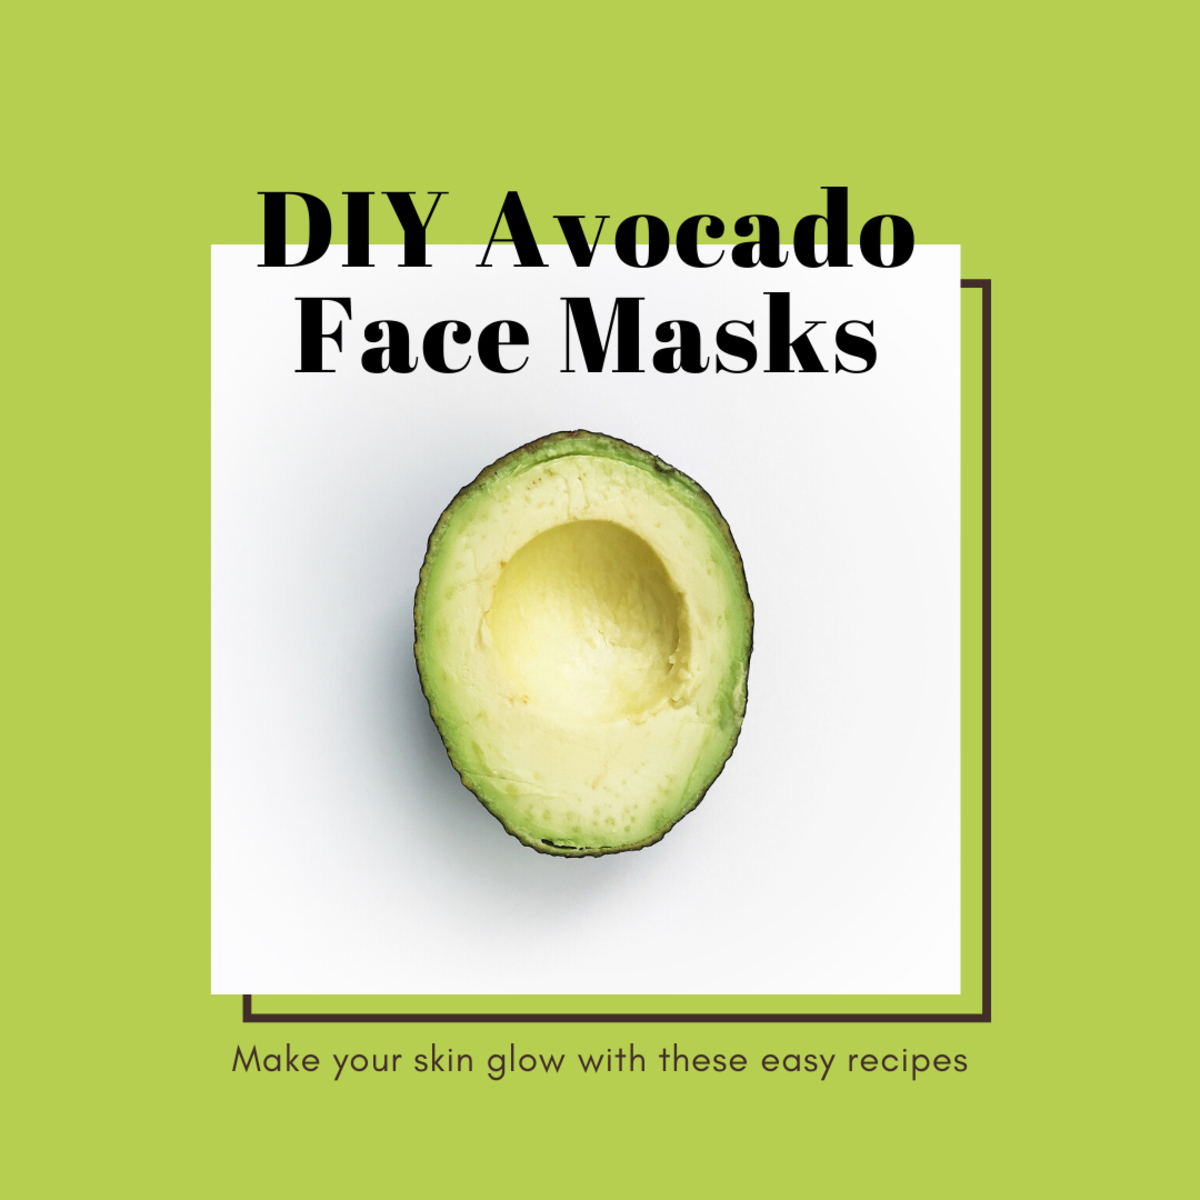 This article will break down the benefits of avocados for skin care and provide some DIY recipes for face masks as well.